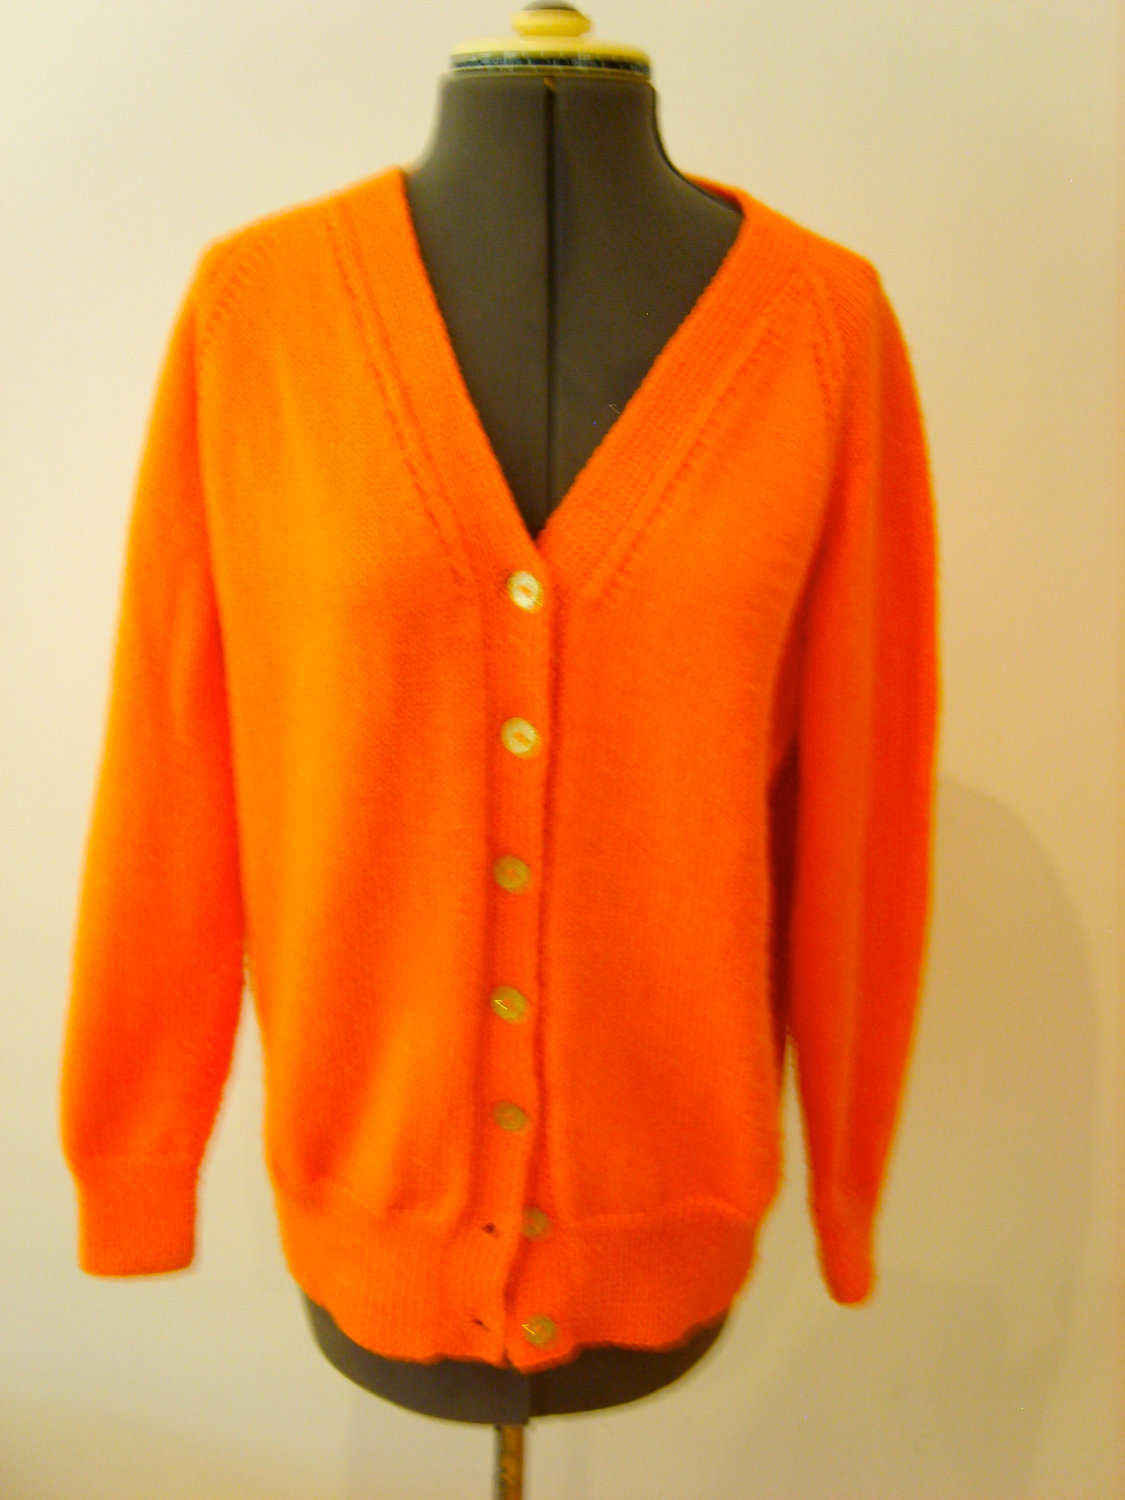 bright orange retro cardigan bright orange retro cardigan by qwerkbox ...